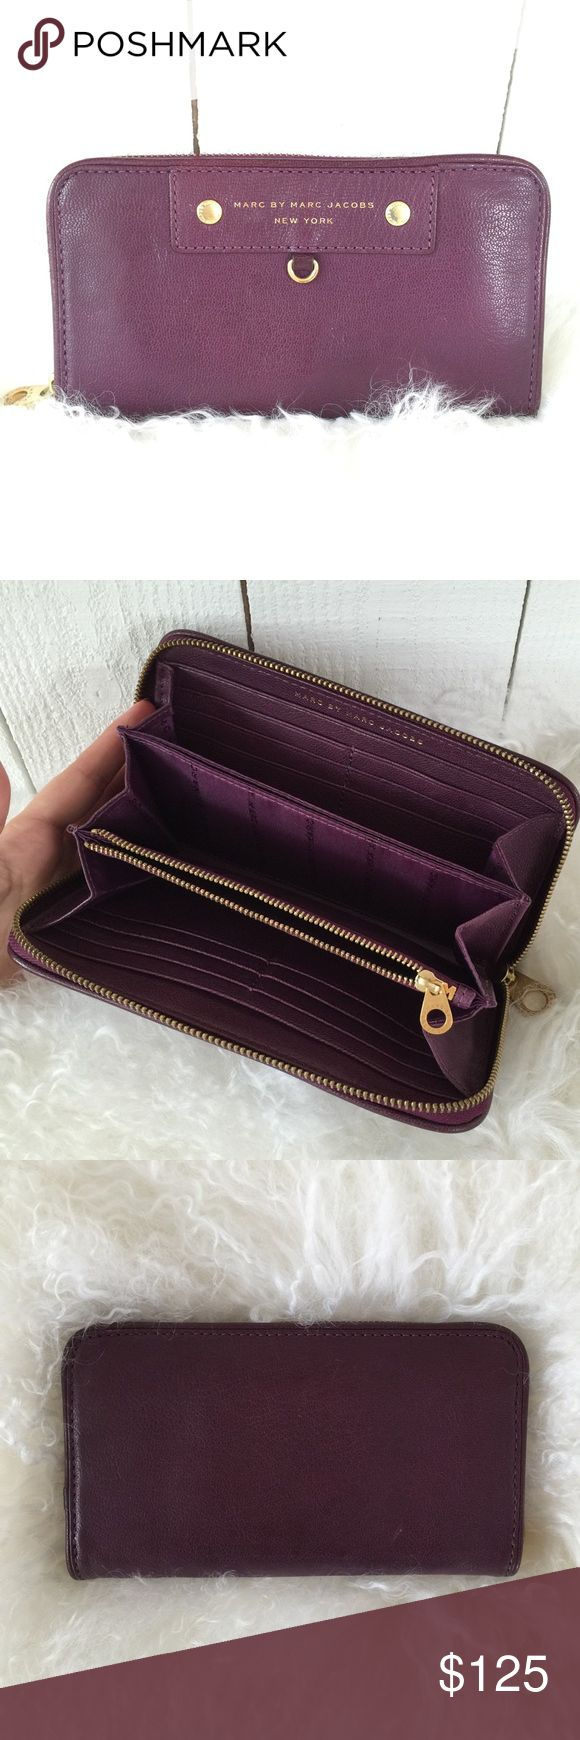 "Marc Jacobs Wallet Large eggplant colored leather Marc Jacobs wallet. Like new condition. Very minimal, normal wear to the goldtone hardware. This is 9""x4.5"" and I have used it as a small clutch. Lots of card storage! Marc by Marc Jacobs Bags Wallets"